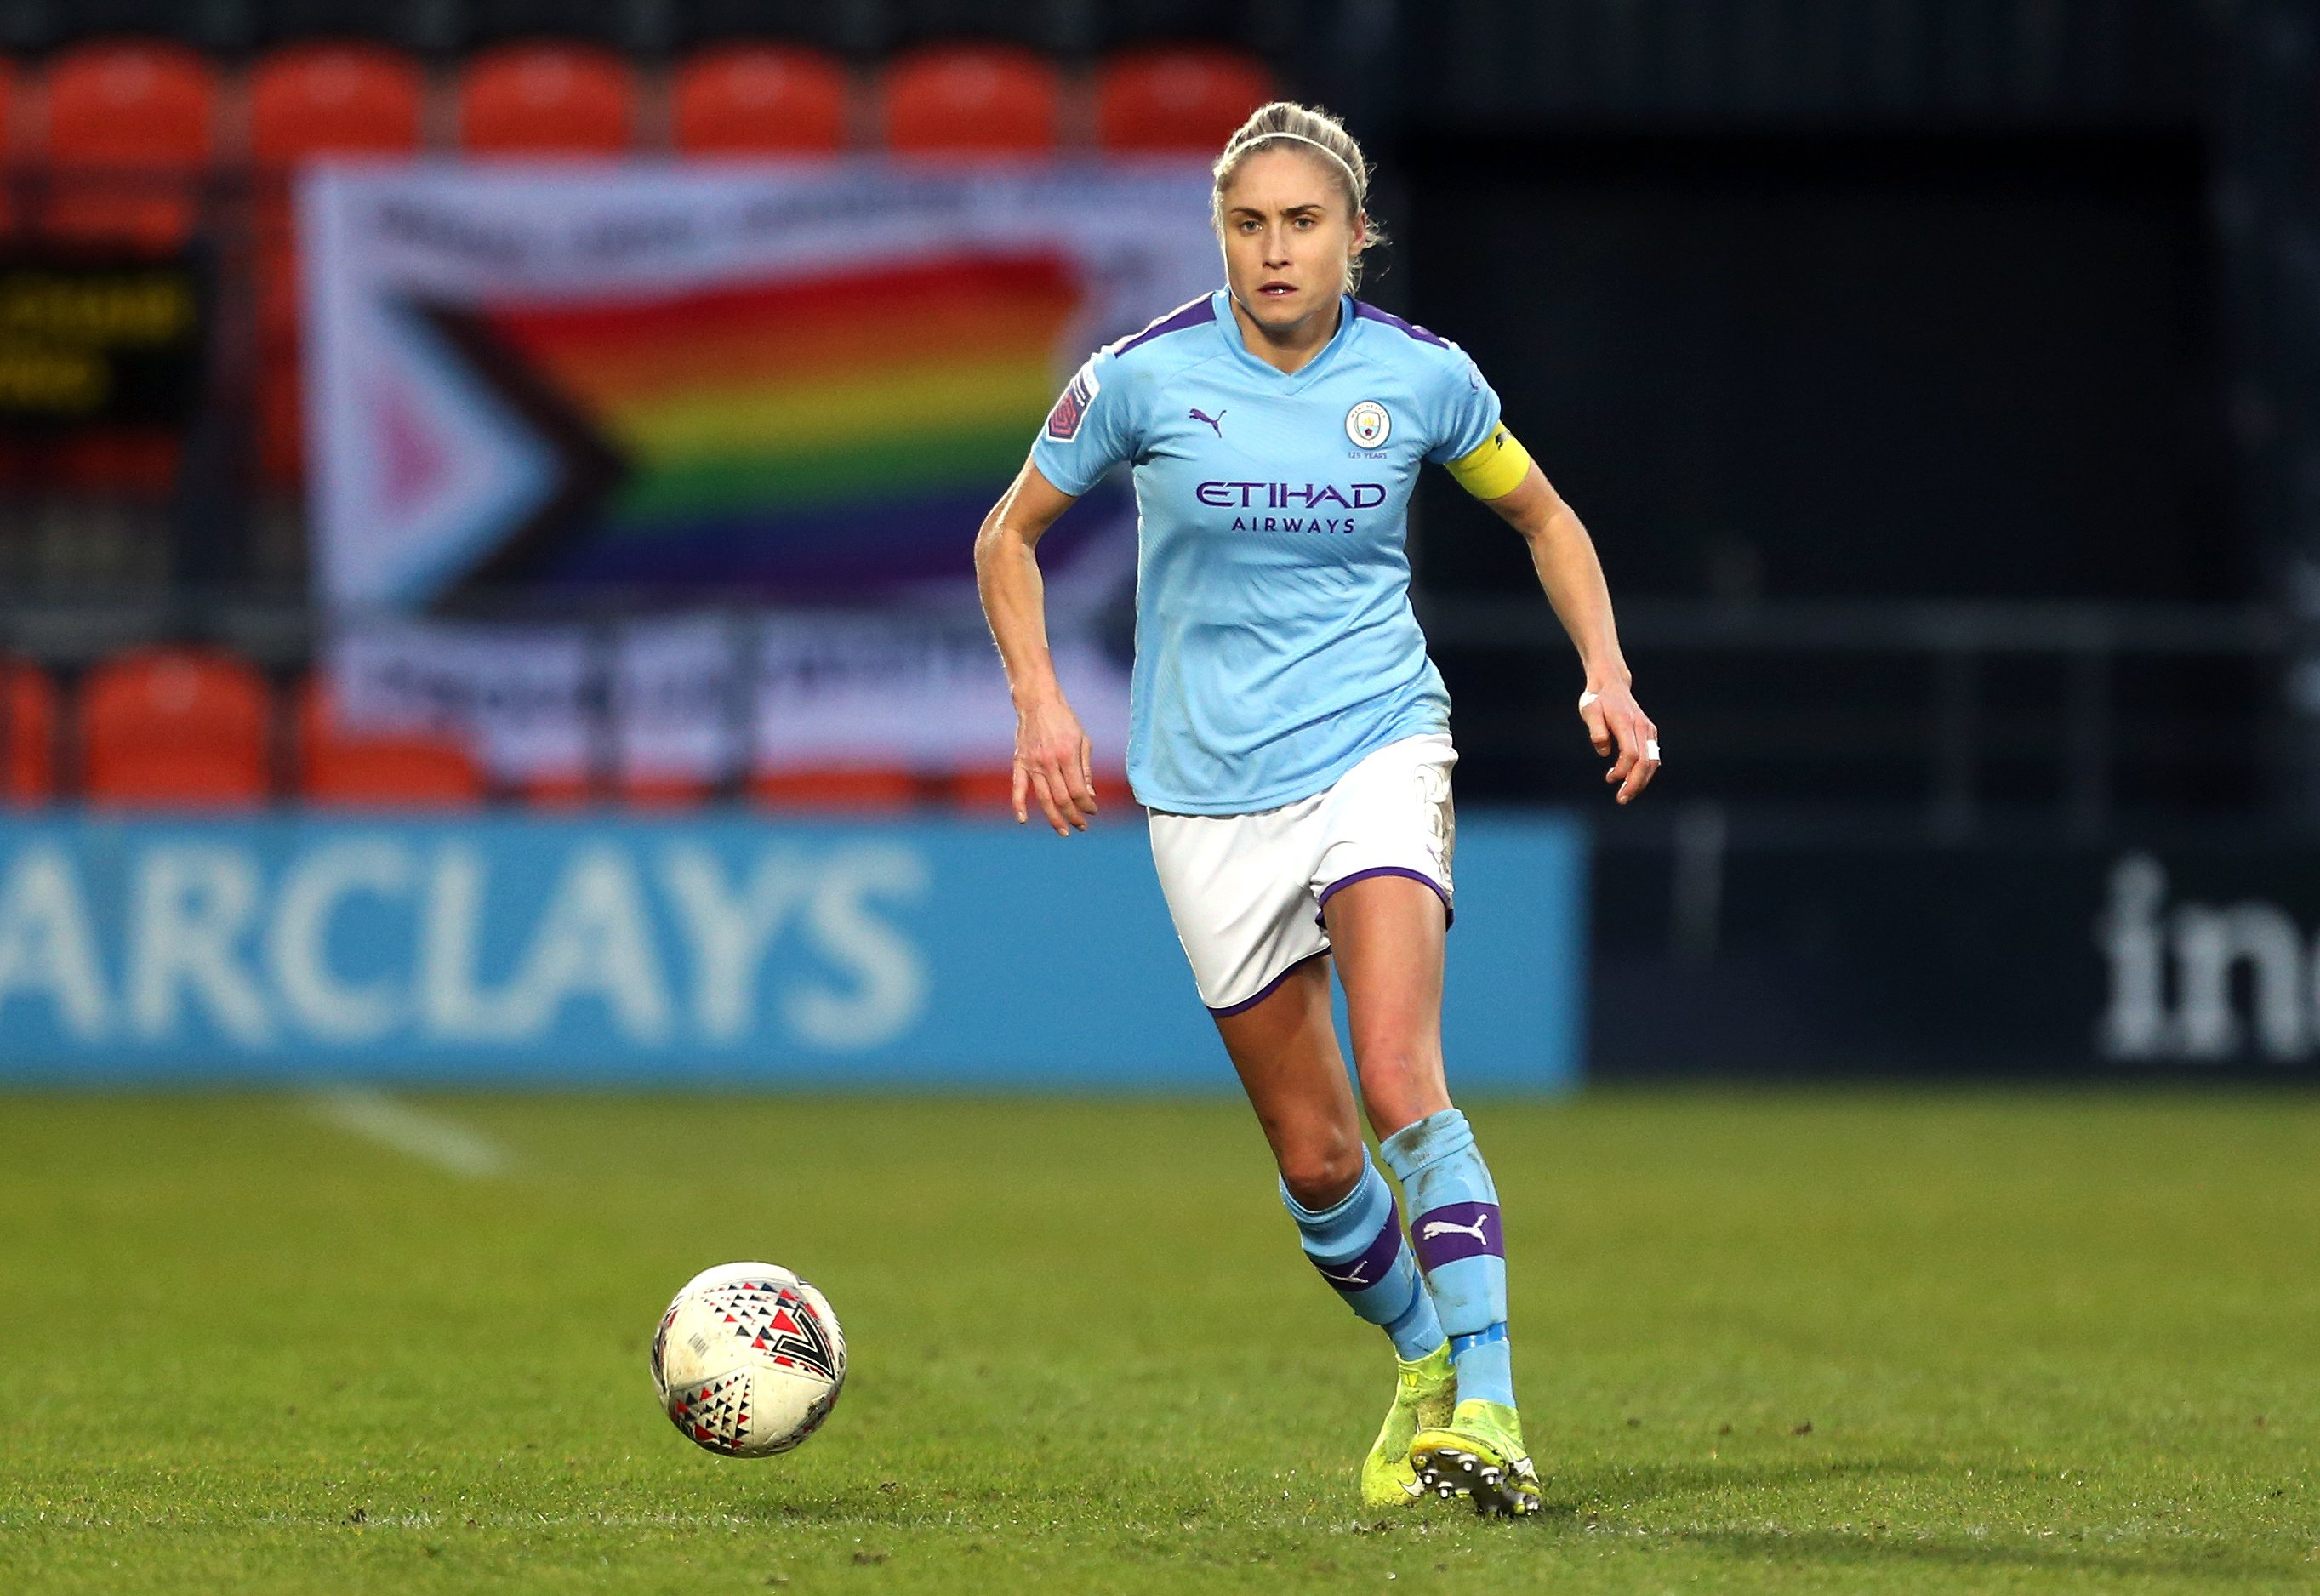 Manchester City captain Steph Houghton determined to finish on a high for outgoing boss Nick Cushing